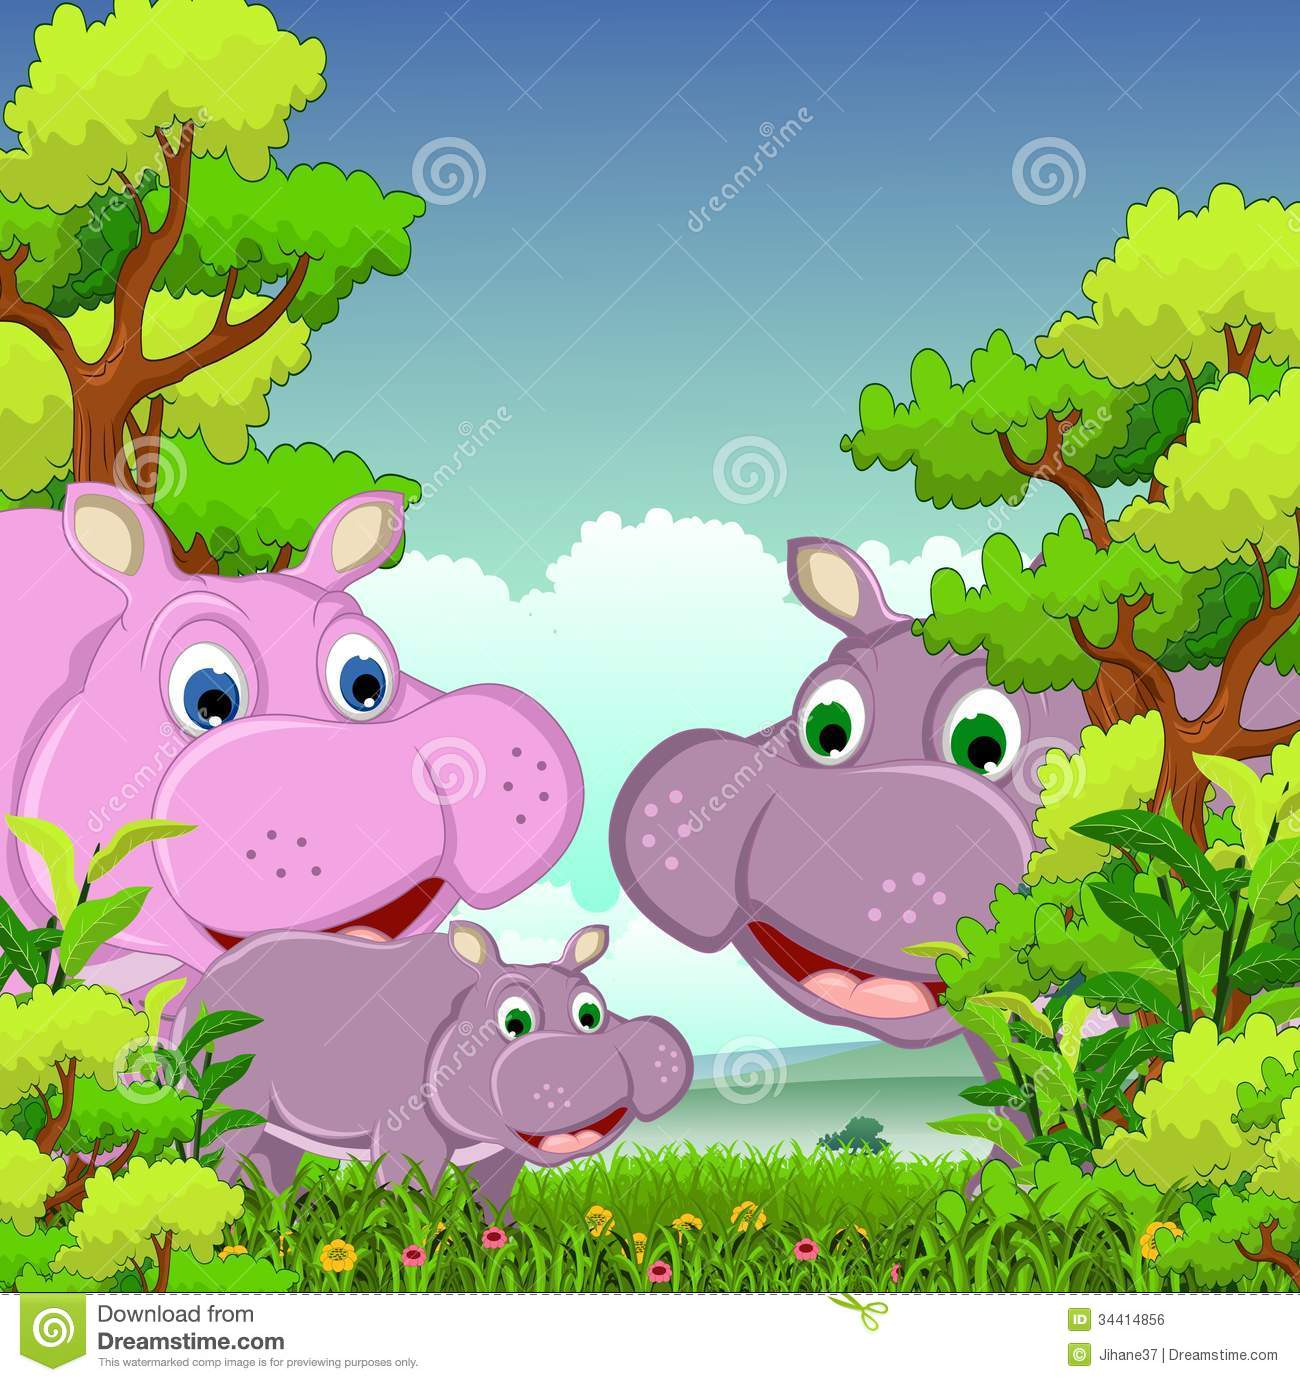 family of hippo cartoon with forest background royalty free stock image